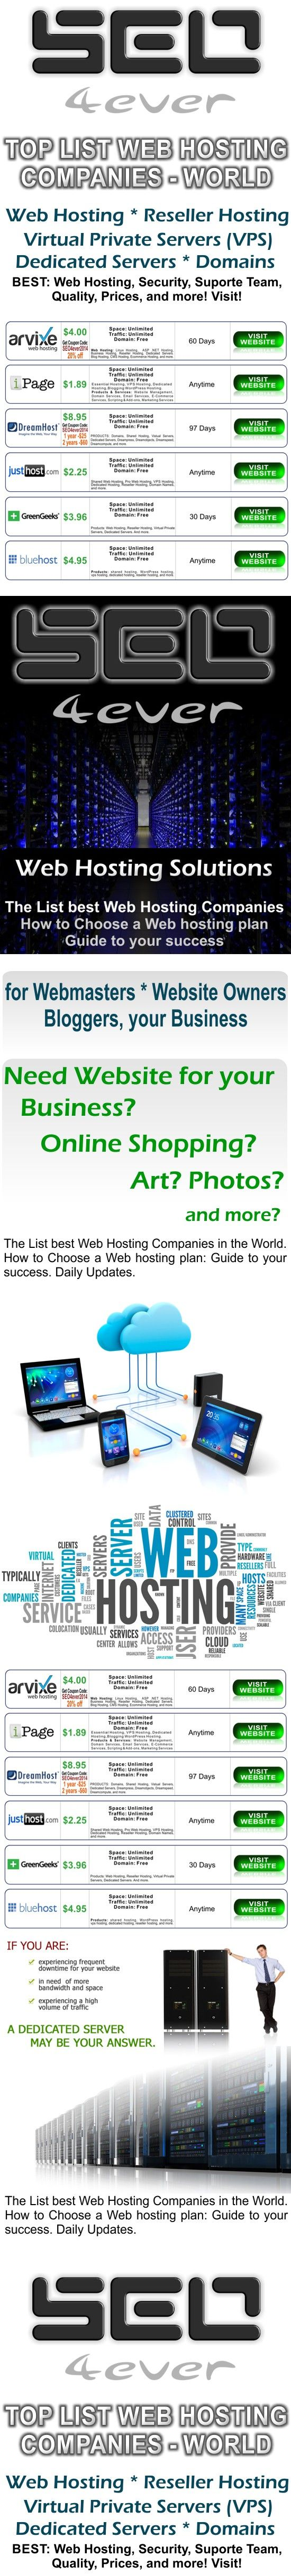 Click here to go to the company website - The List Best Web Hosting Companies In The World How To Choose A Web Hosting